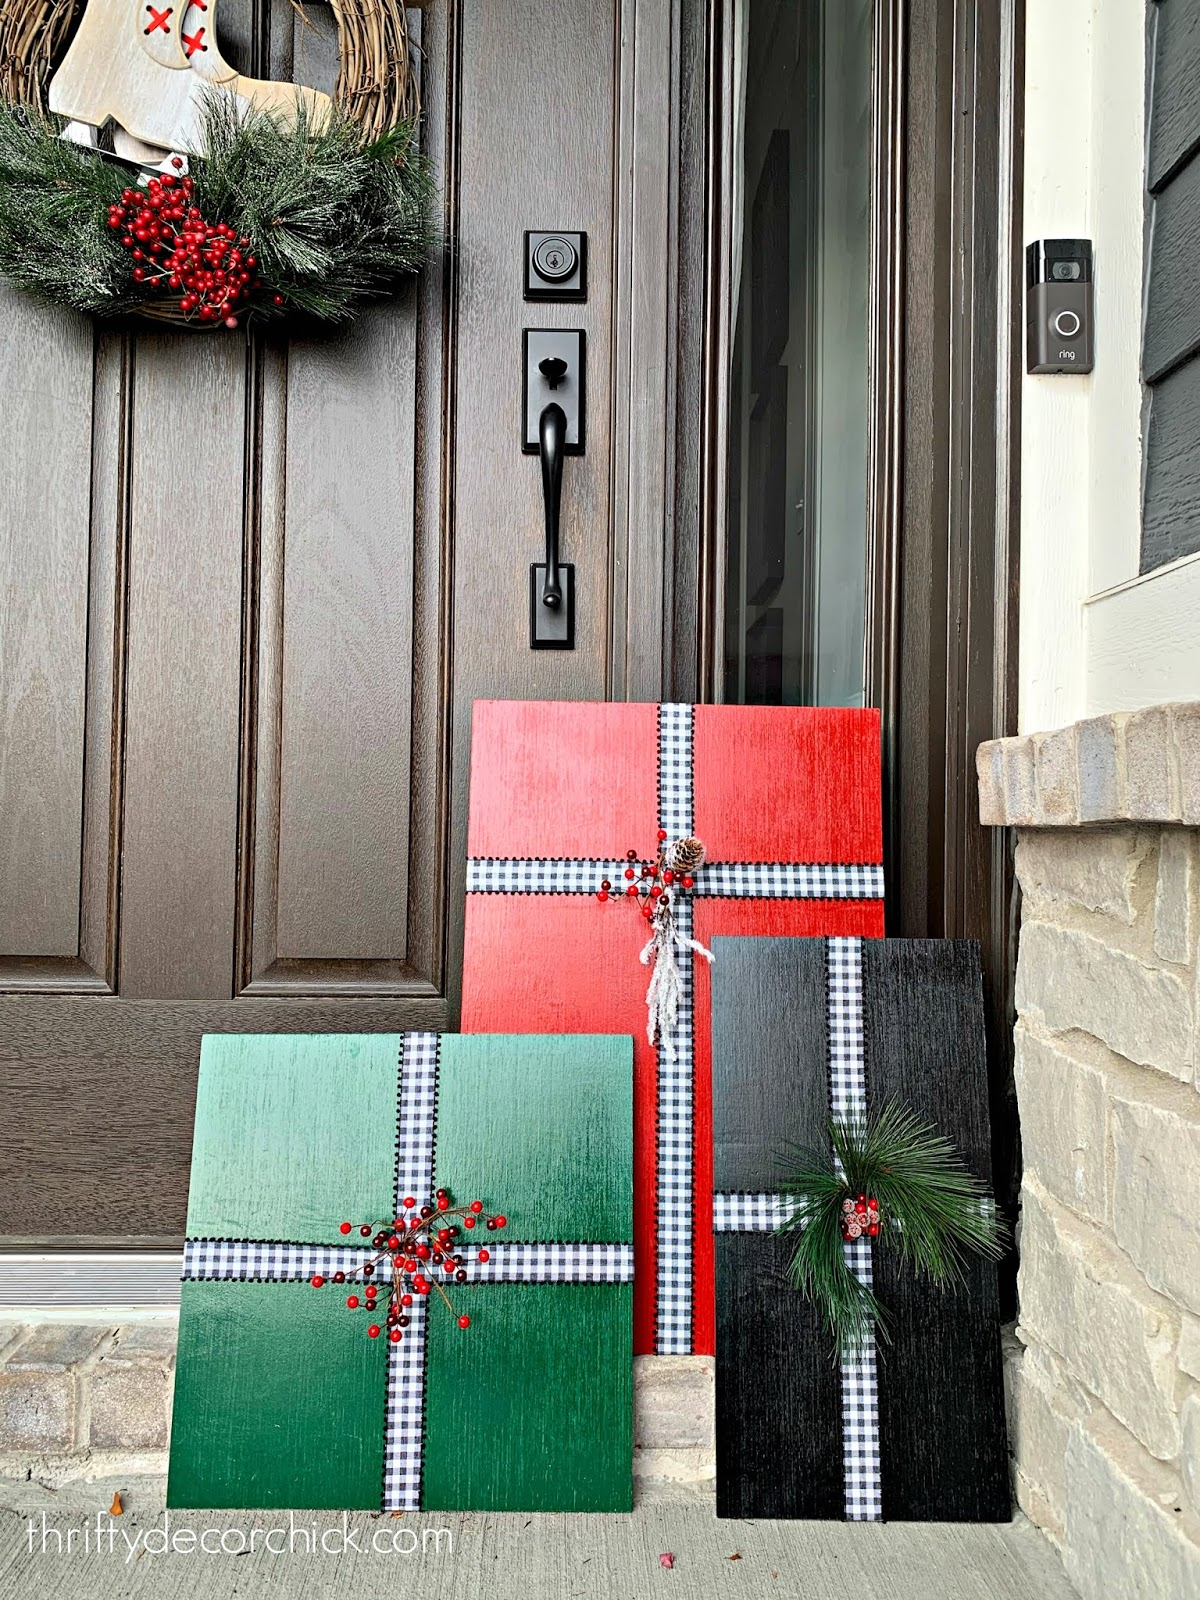 How to make large Christmas package art for the porch